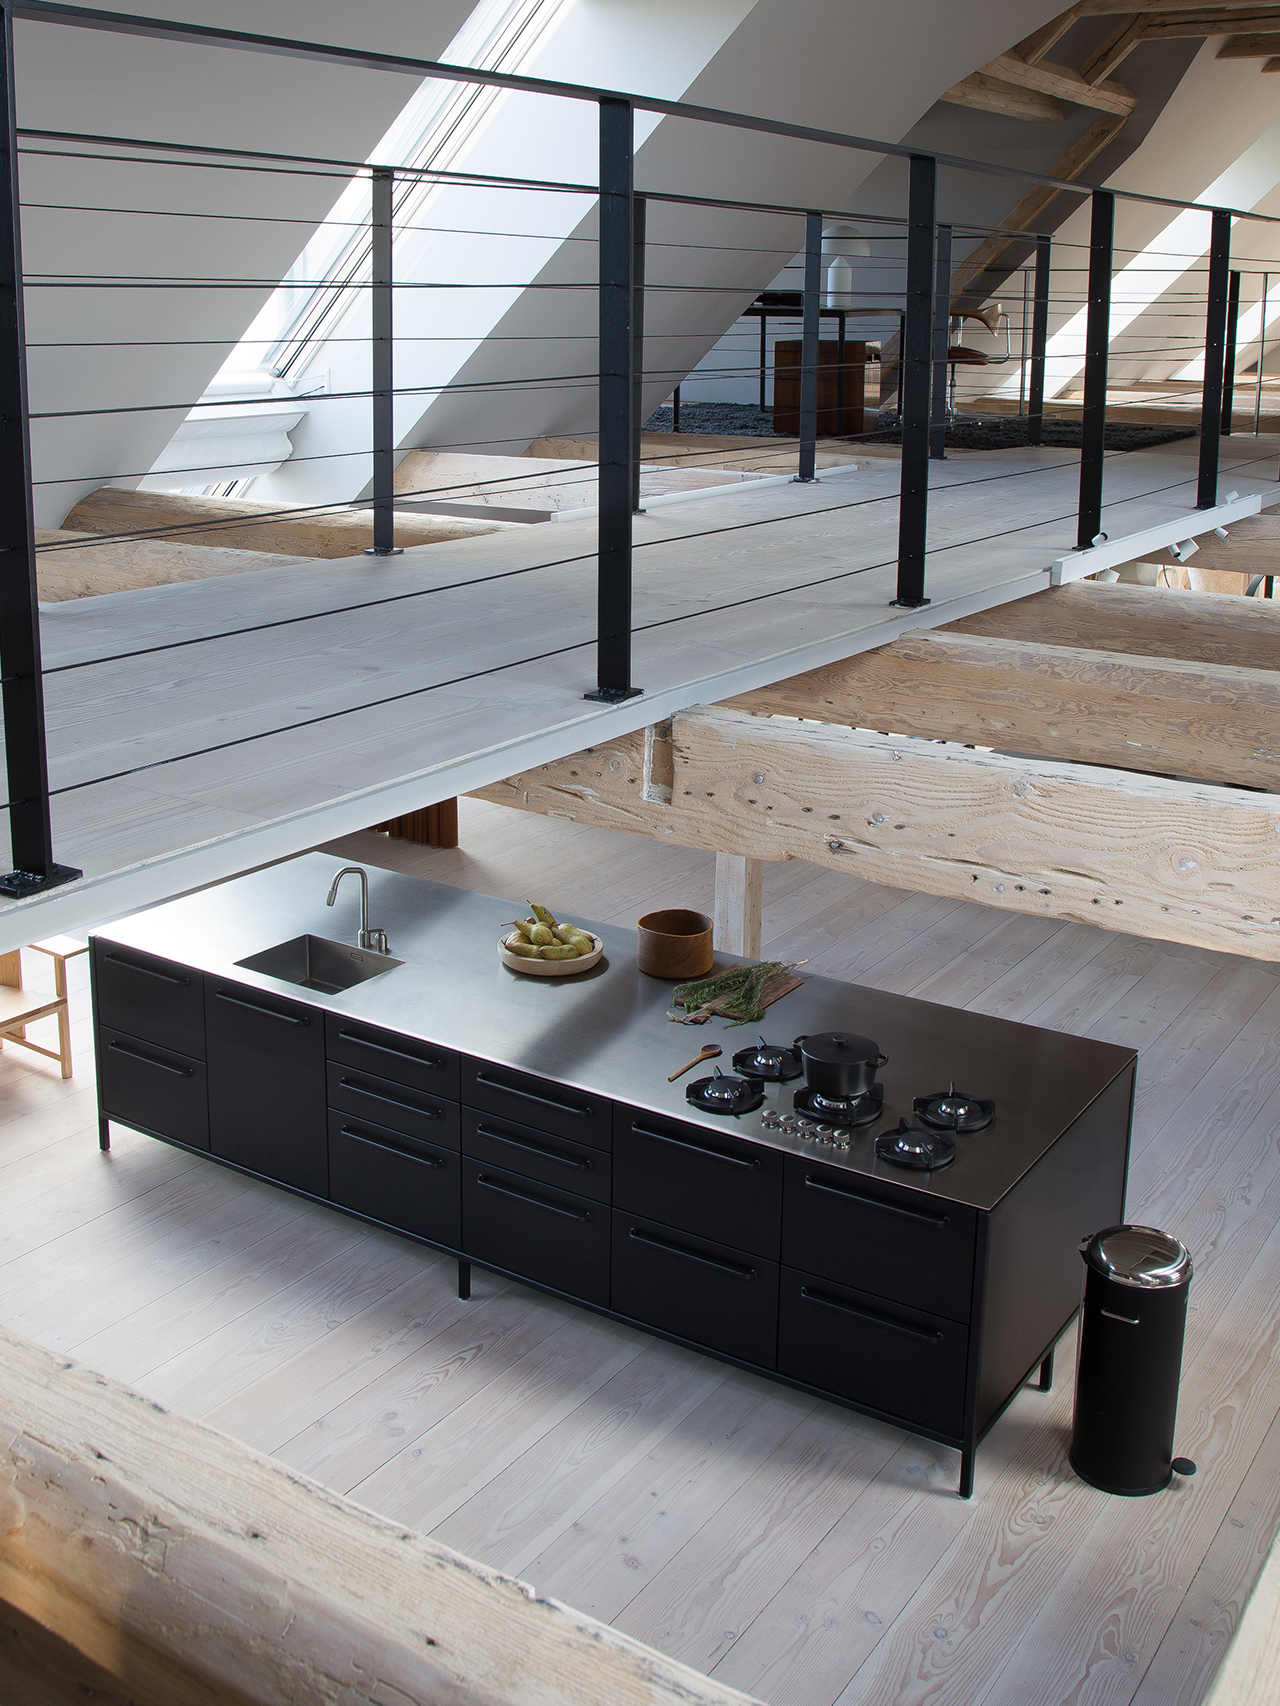 U0027A Vipp Kitchen Is For Life. But You Can Start With Just A Weekend.u0027 Images